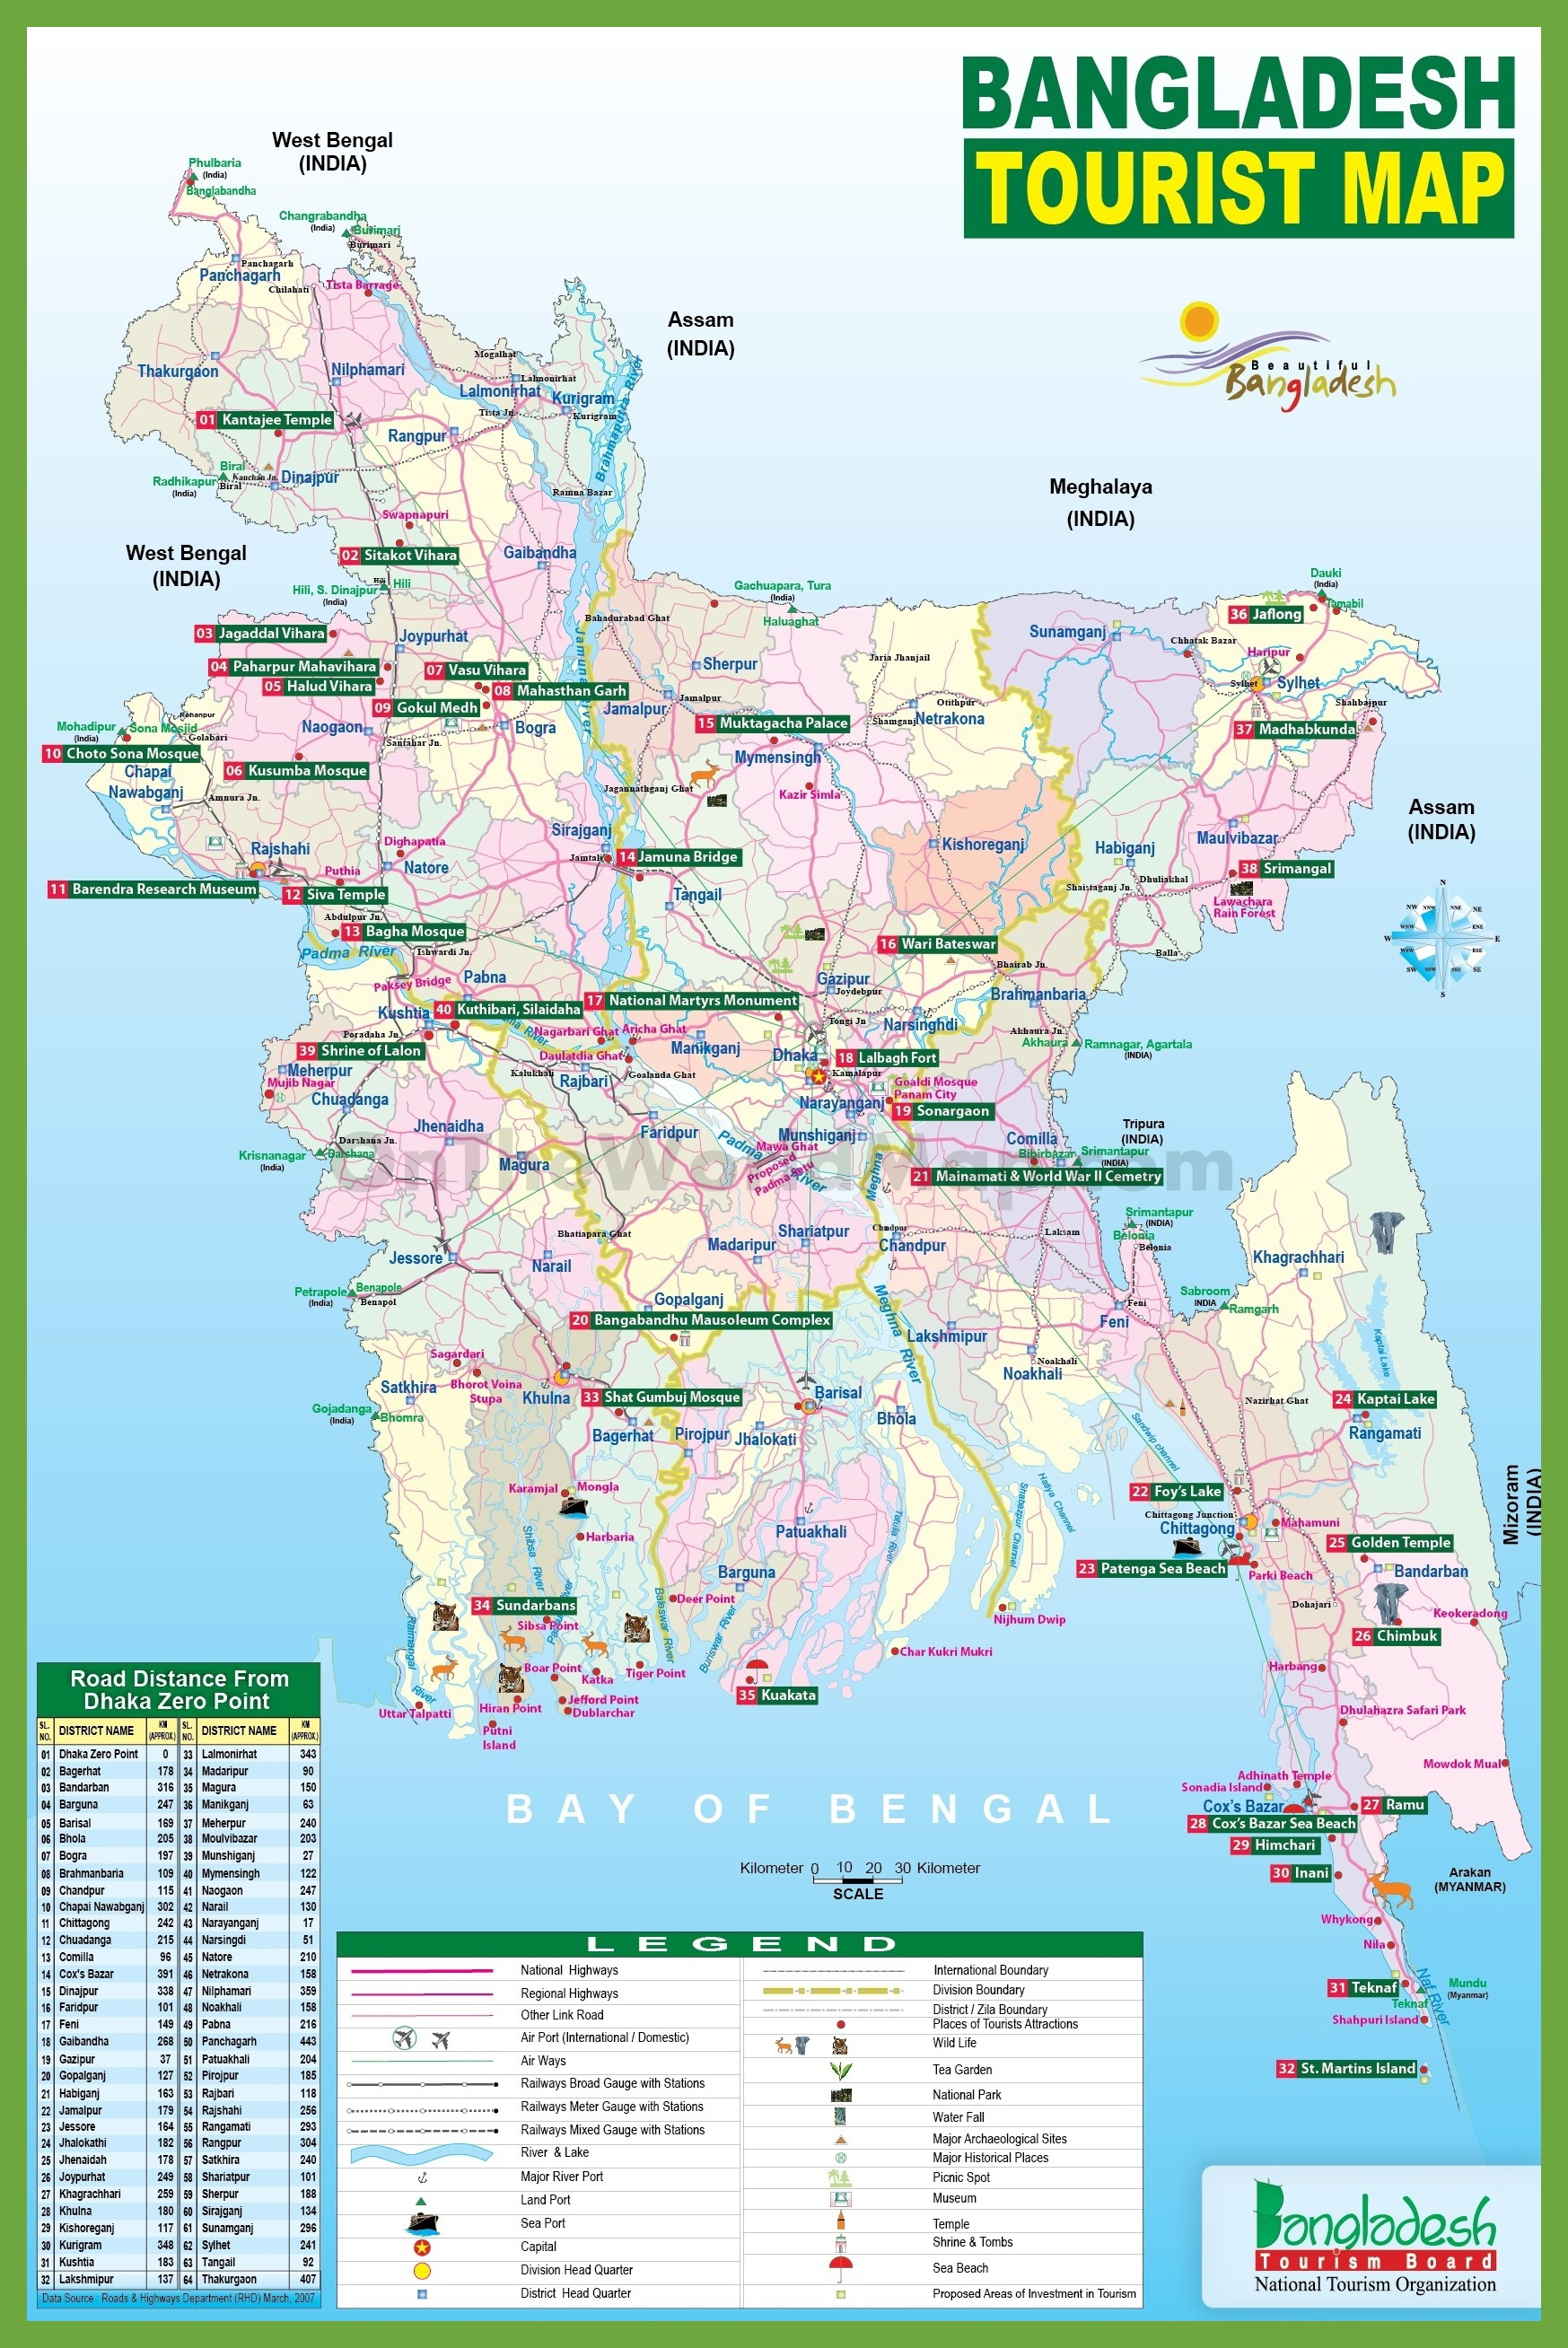 Tourist map of bangladesh tourist map of bangladesh gumiabroncs Gallery